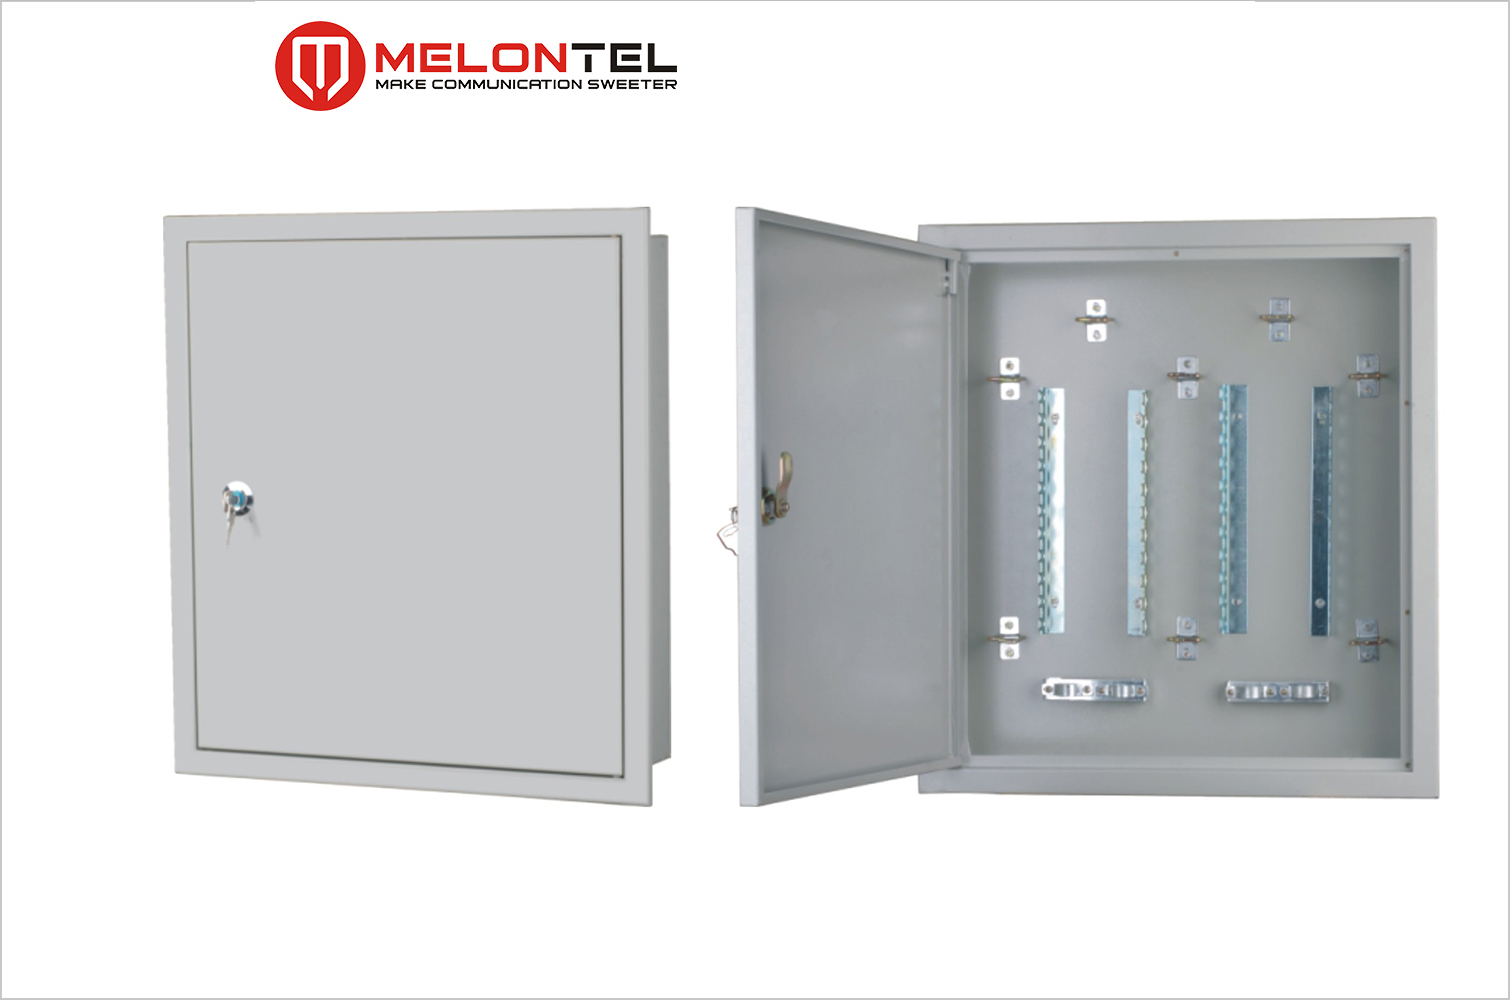 MT-2354 indoor 100 pair distribution box with lock